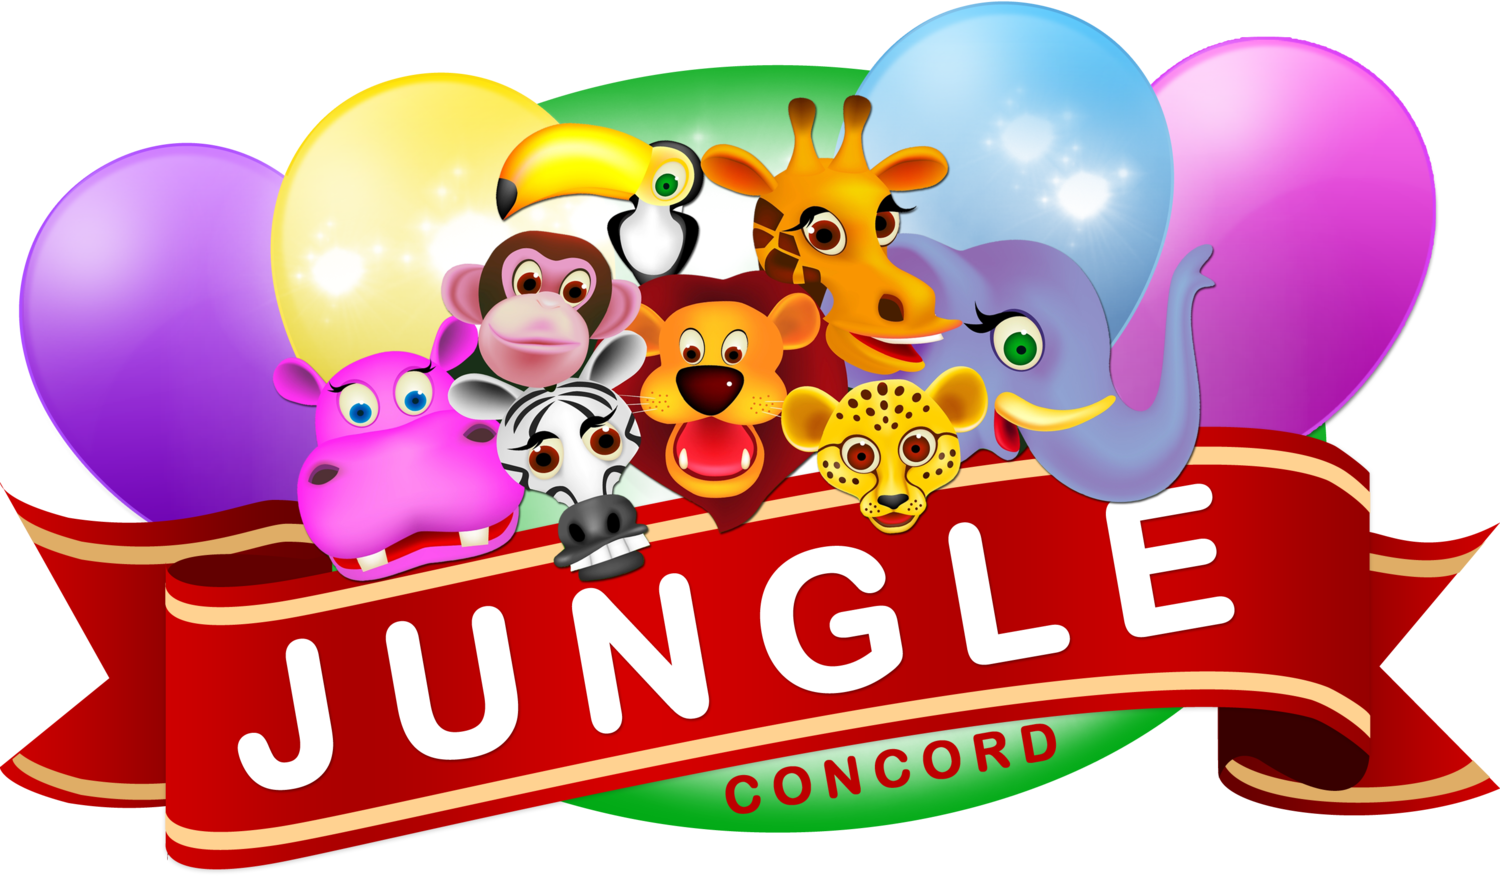 End of school party clipart royalty free library Jungle Concord The Jungle concord offers the best indoor play ... royalty free library